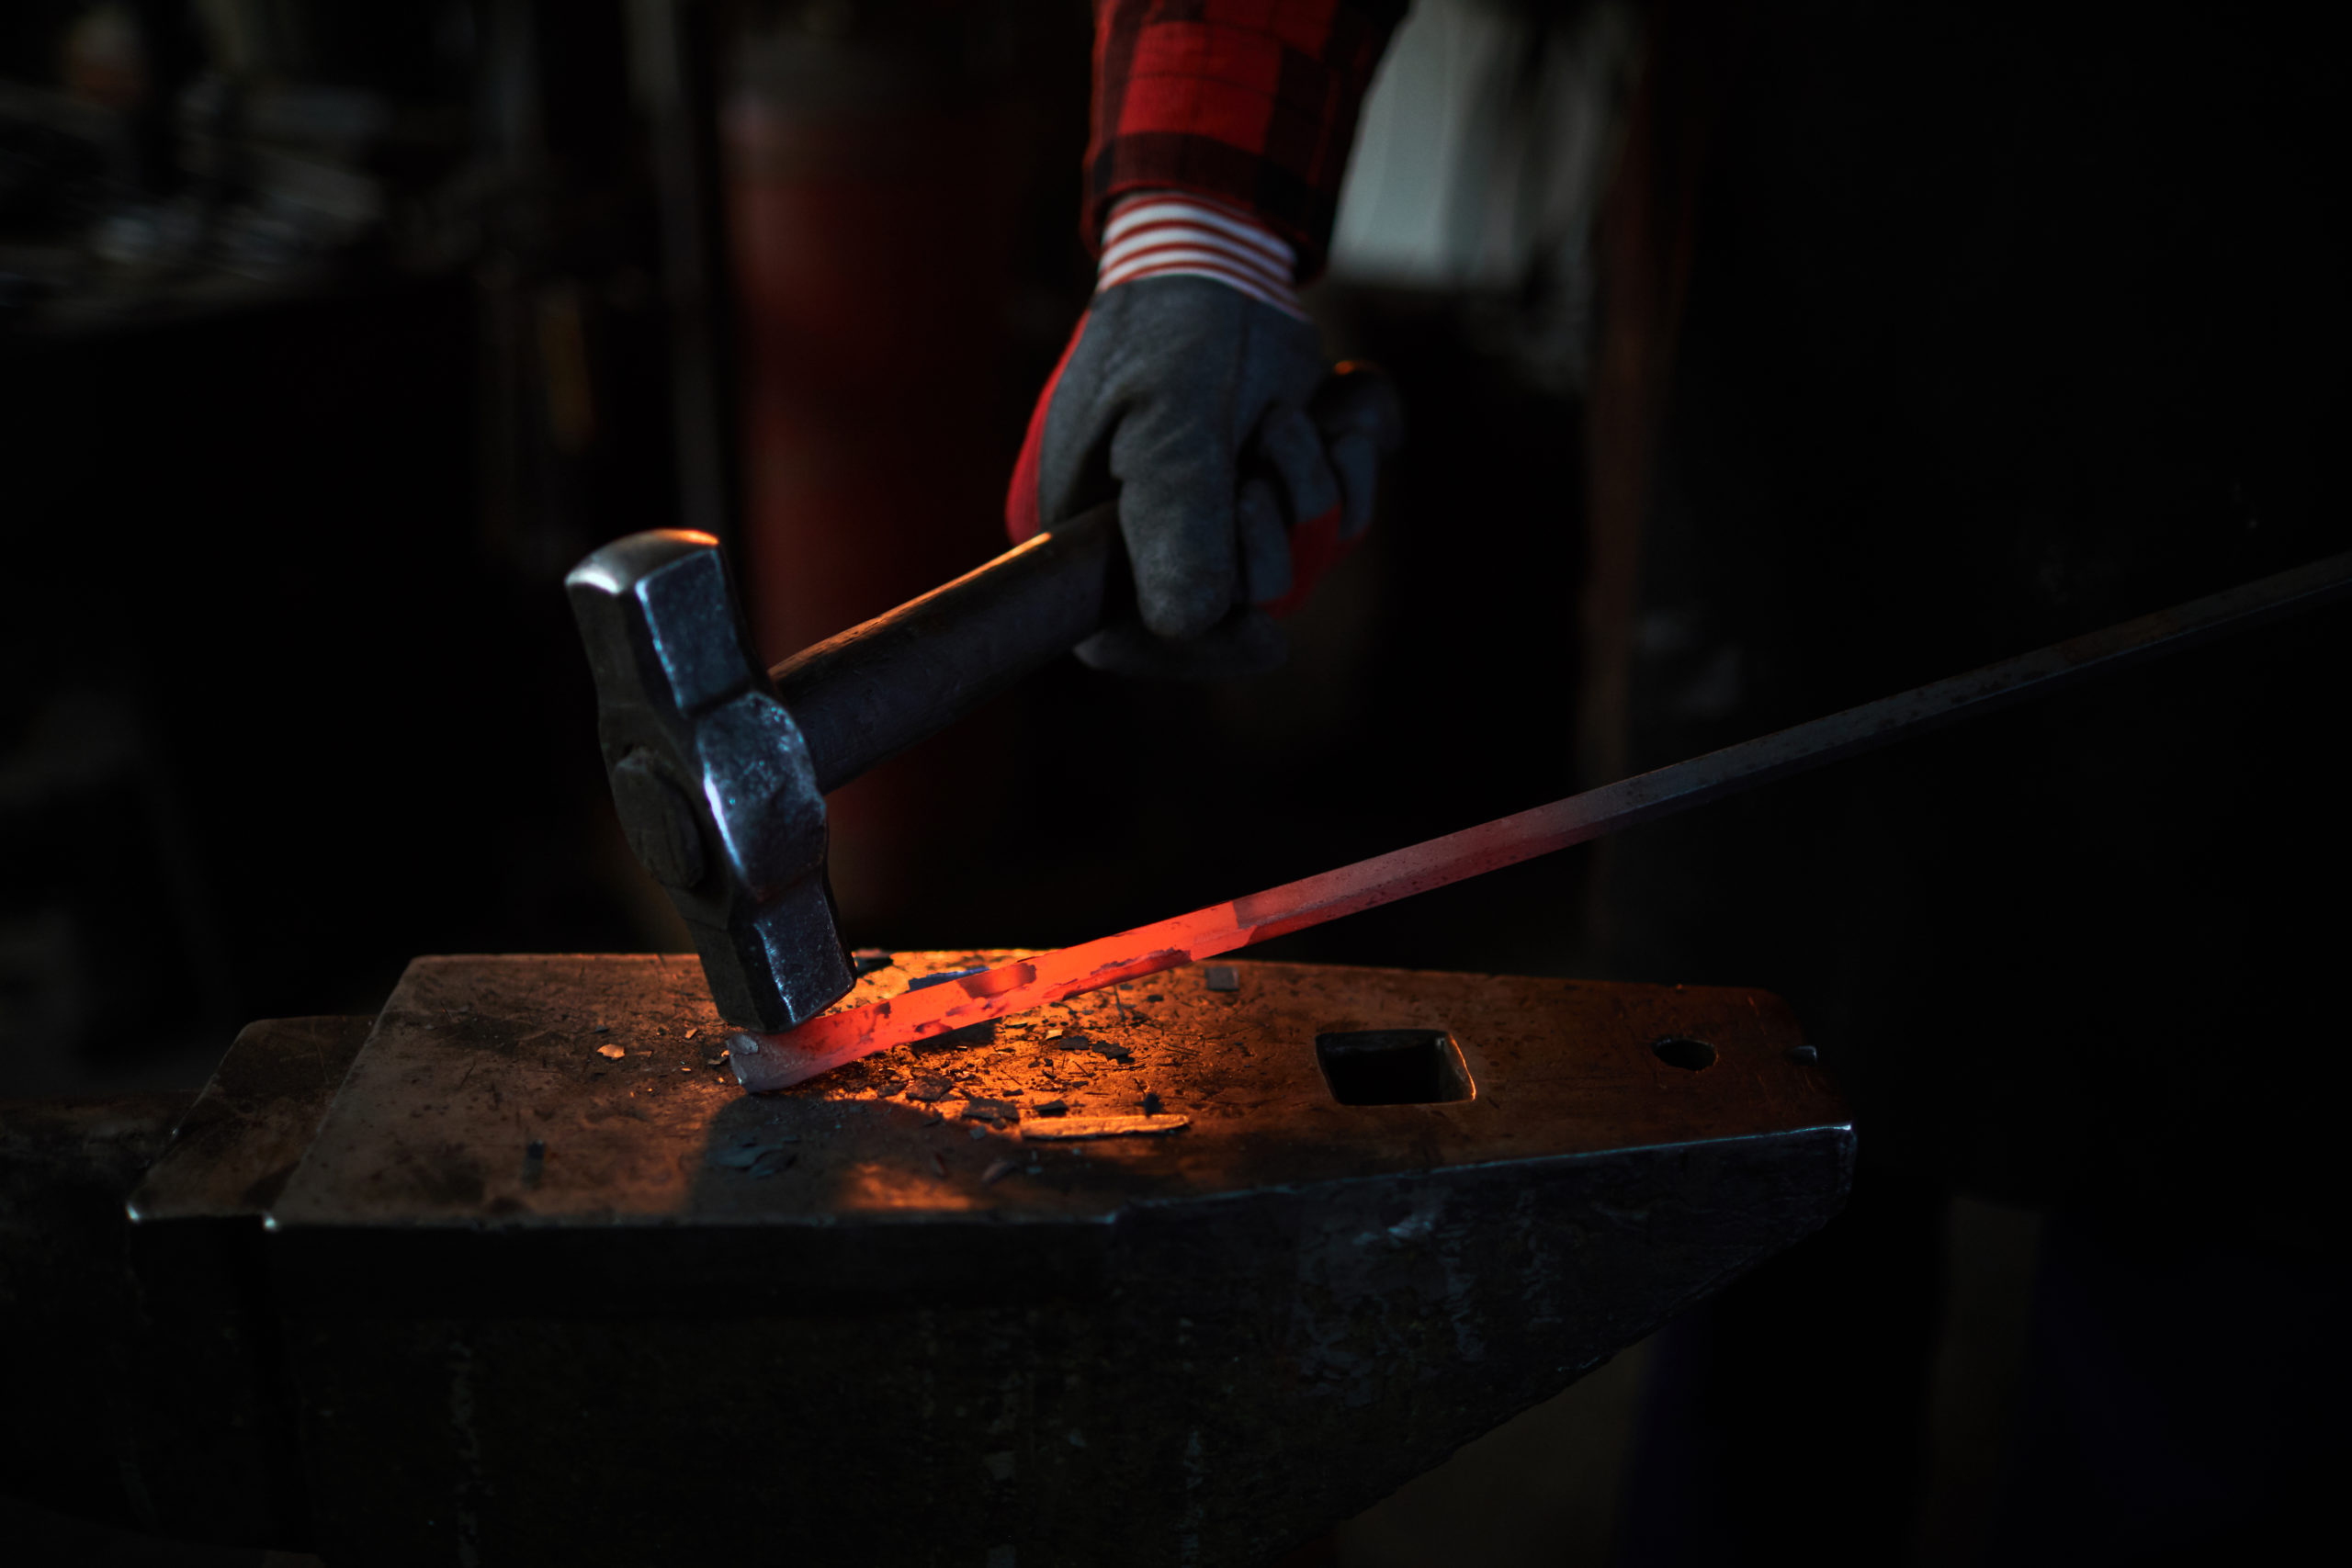 Gloved hand of blacksmith with hammer during work with hot red iron workpiece